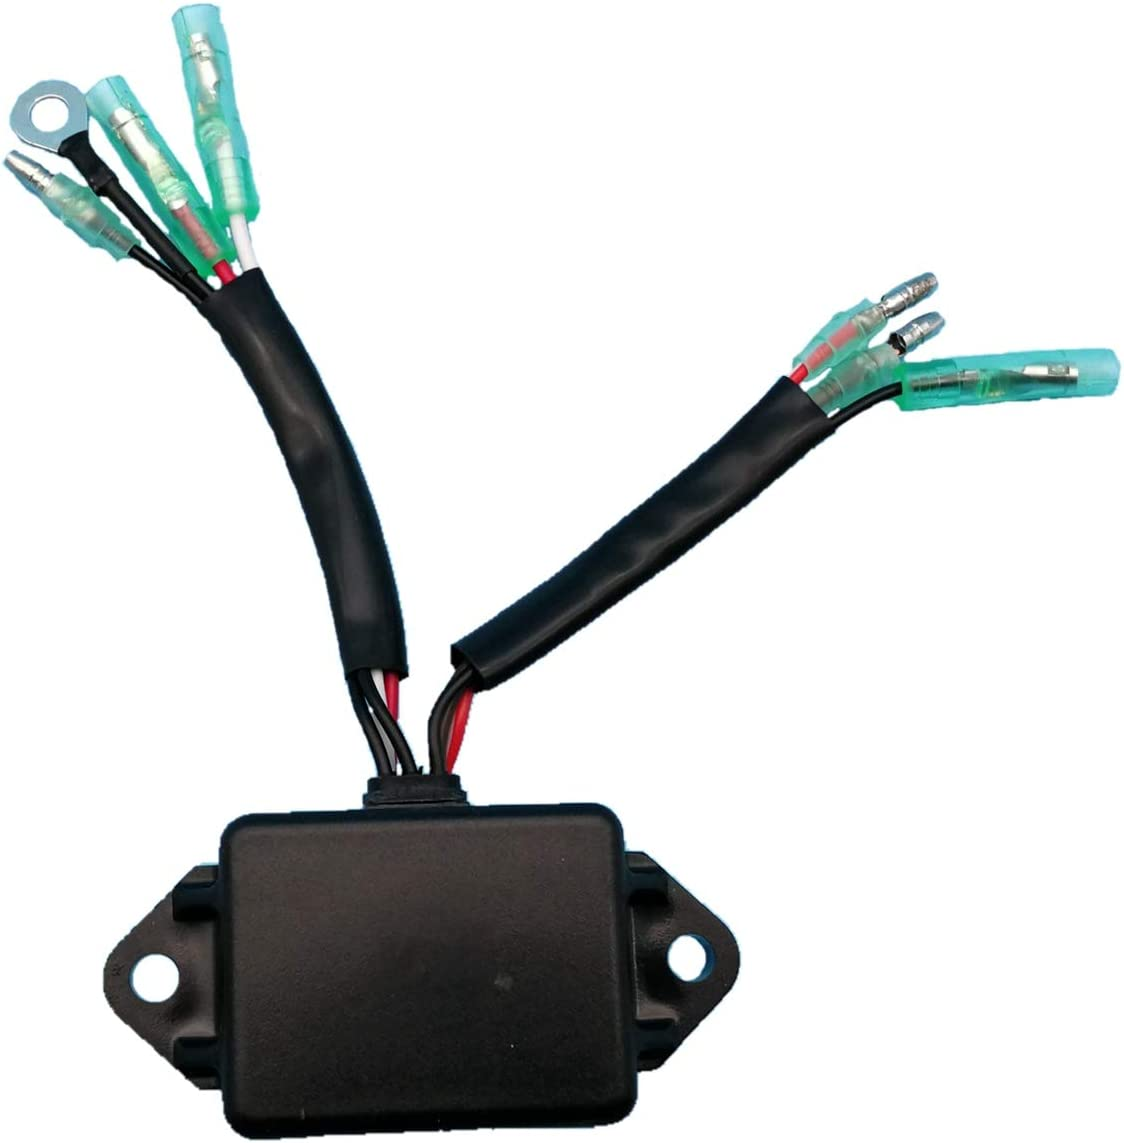 Tuzliufi Replace CDI Box Yamaha 9.9 15 25 Hp Outboard Marine Engine 695-85540-10 695-85540-11 695-85540-12 7 Wires 1984 1985 1986 1987 1988 1989 1990 1991 1992 1993 1994 1995 1996 1997 New Z231